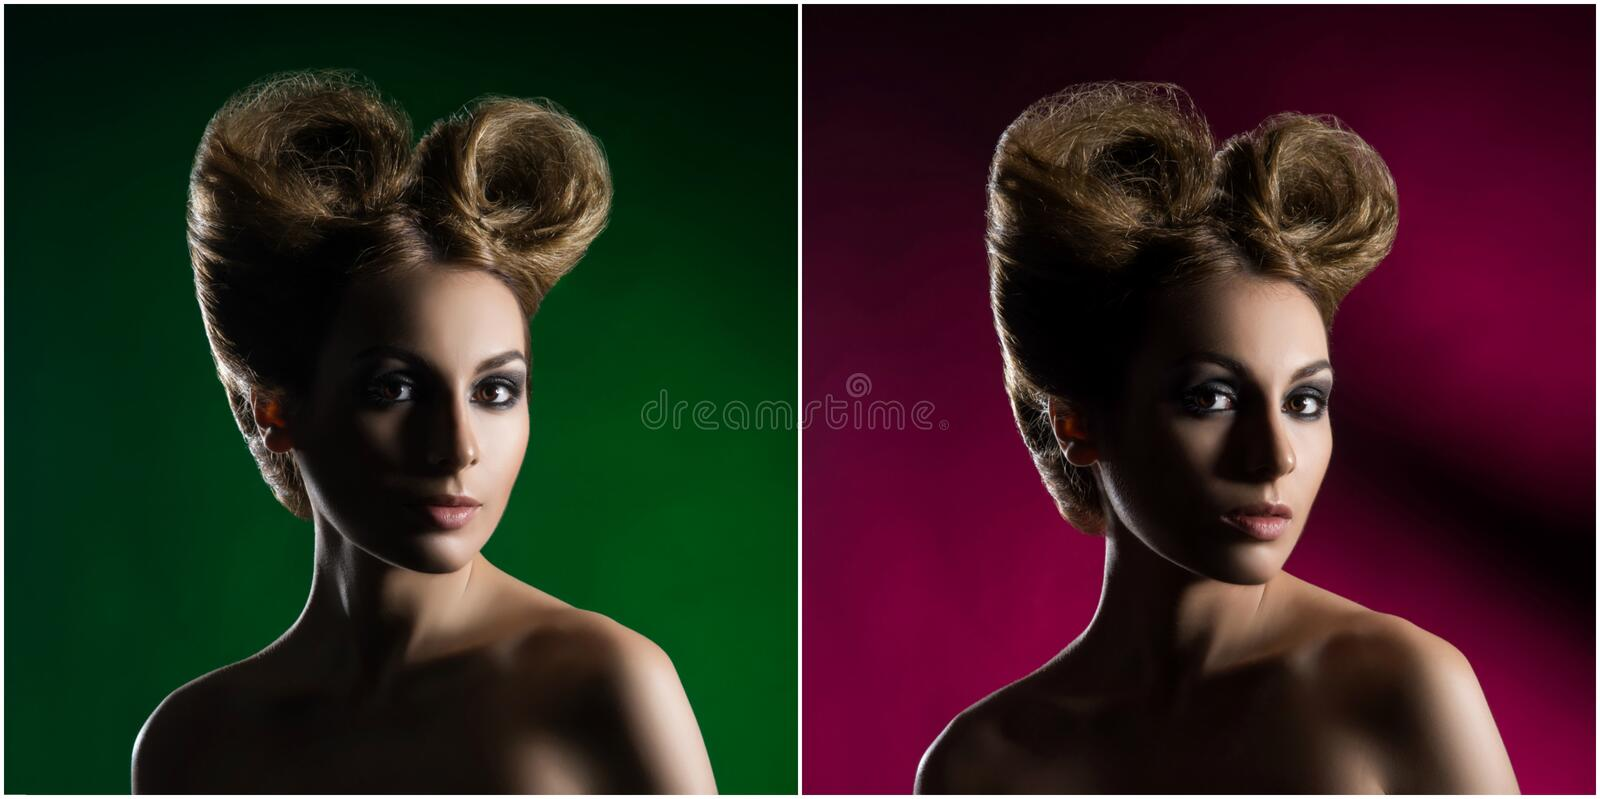 Portrait of a beautiful woman with a glamour haircut over colored background. stock photo